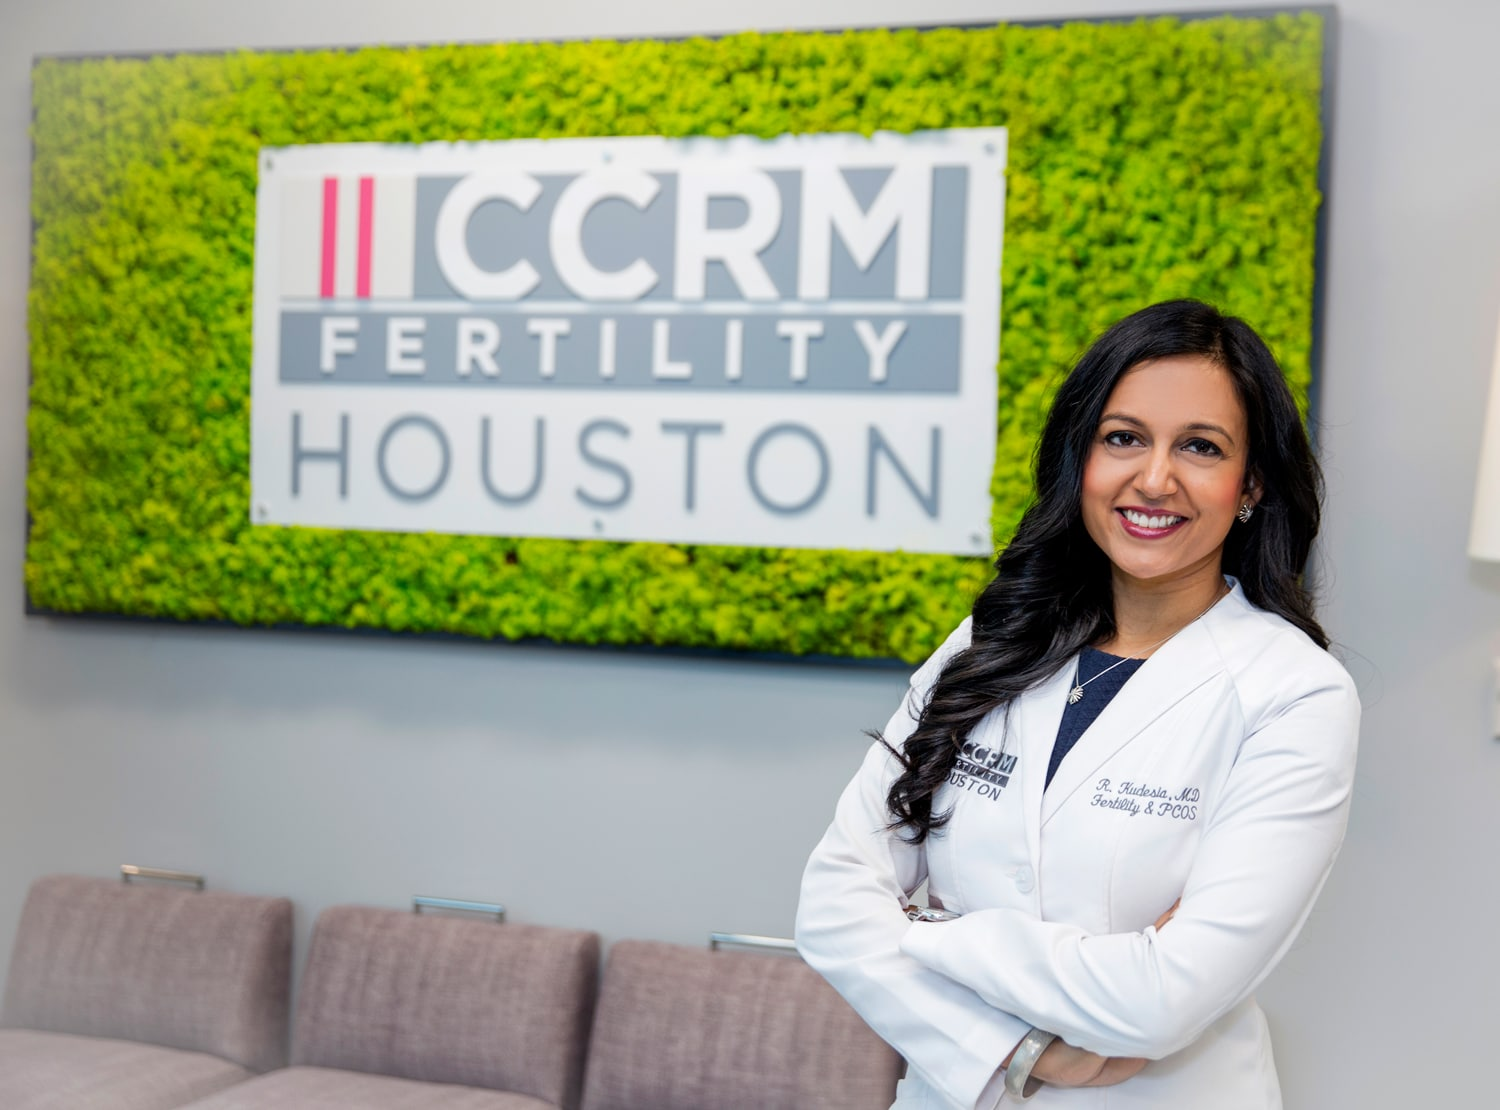 CCRM Houston Fertility Clinic Sugar Land